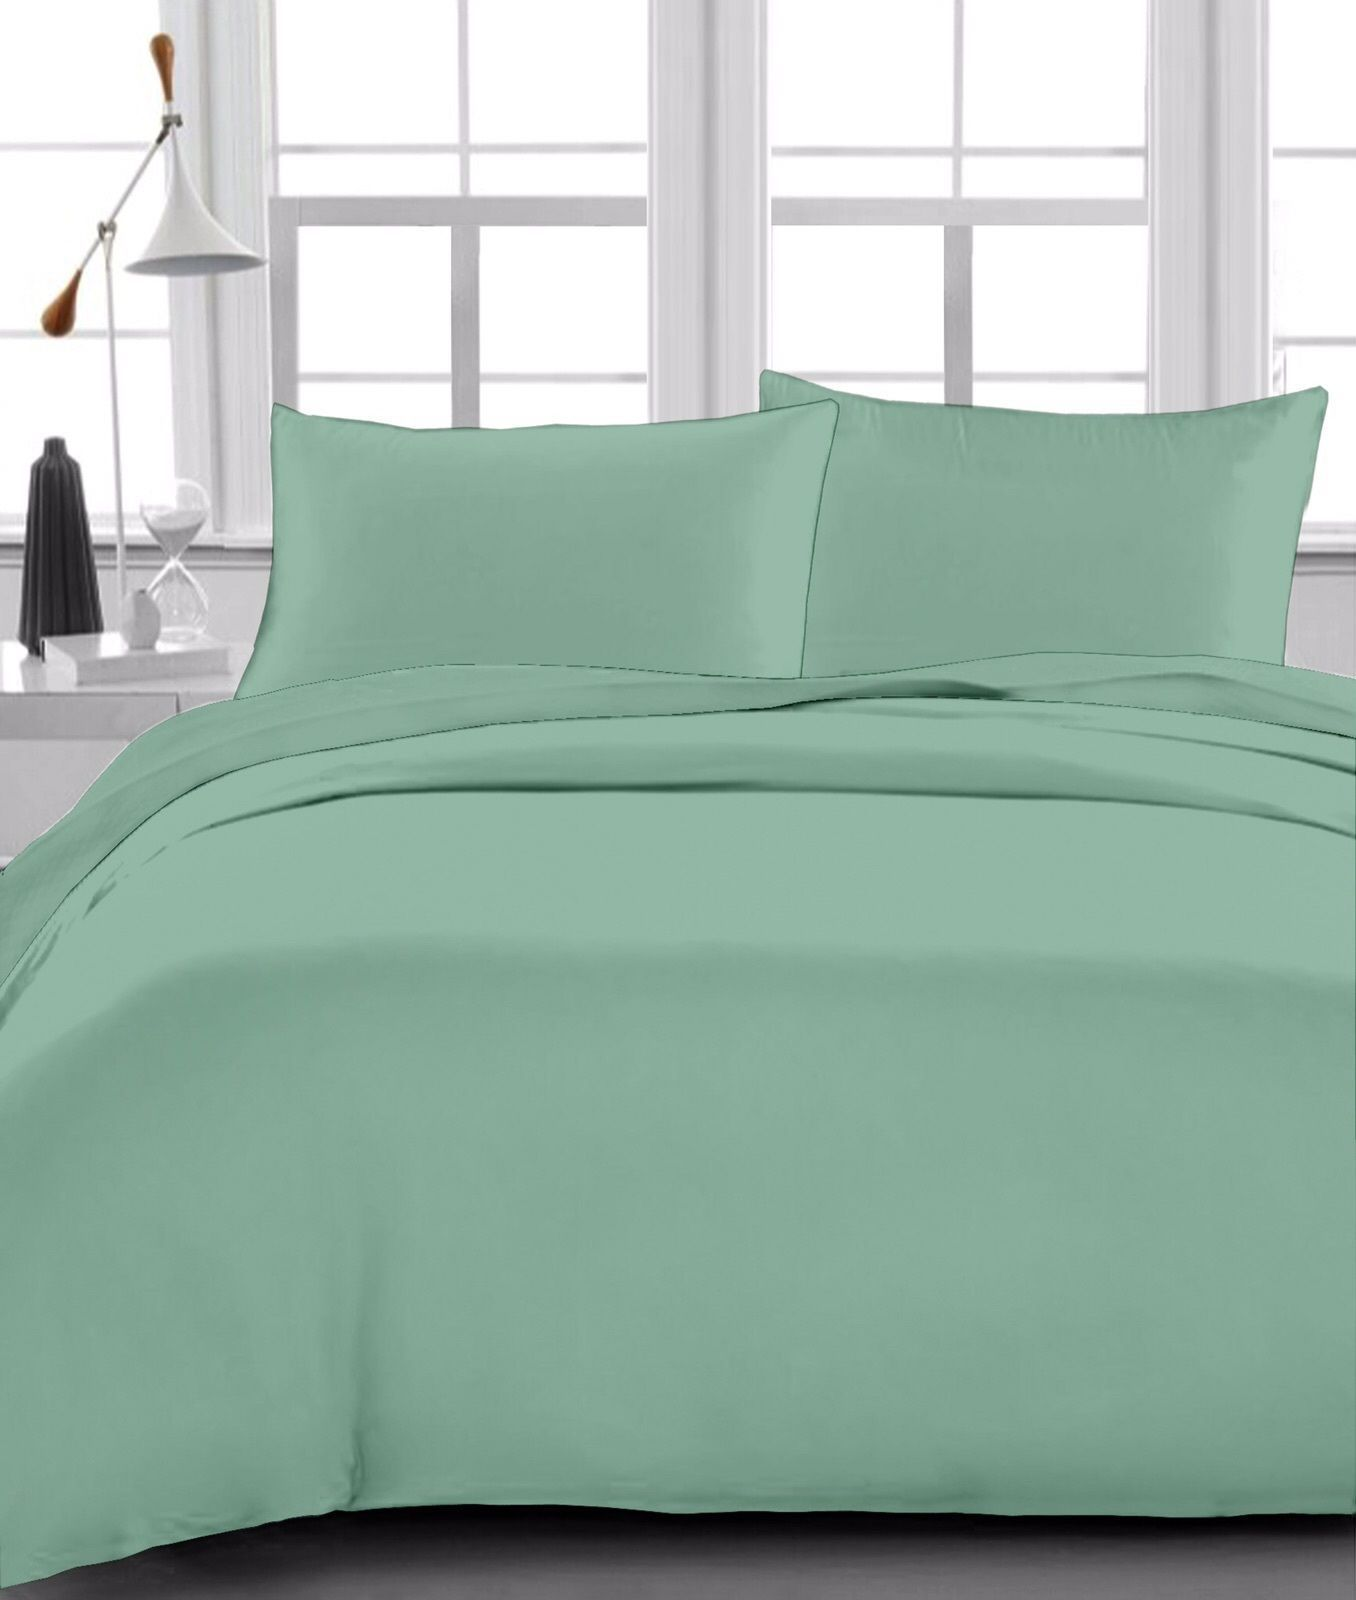 100 Egyptian Cotton Sheets Details About All Size Bedding Items 15